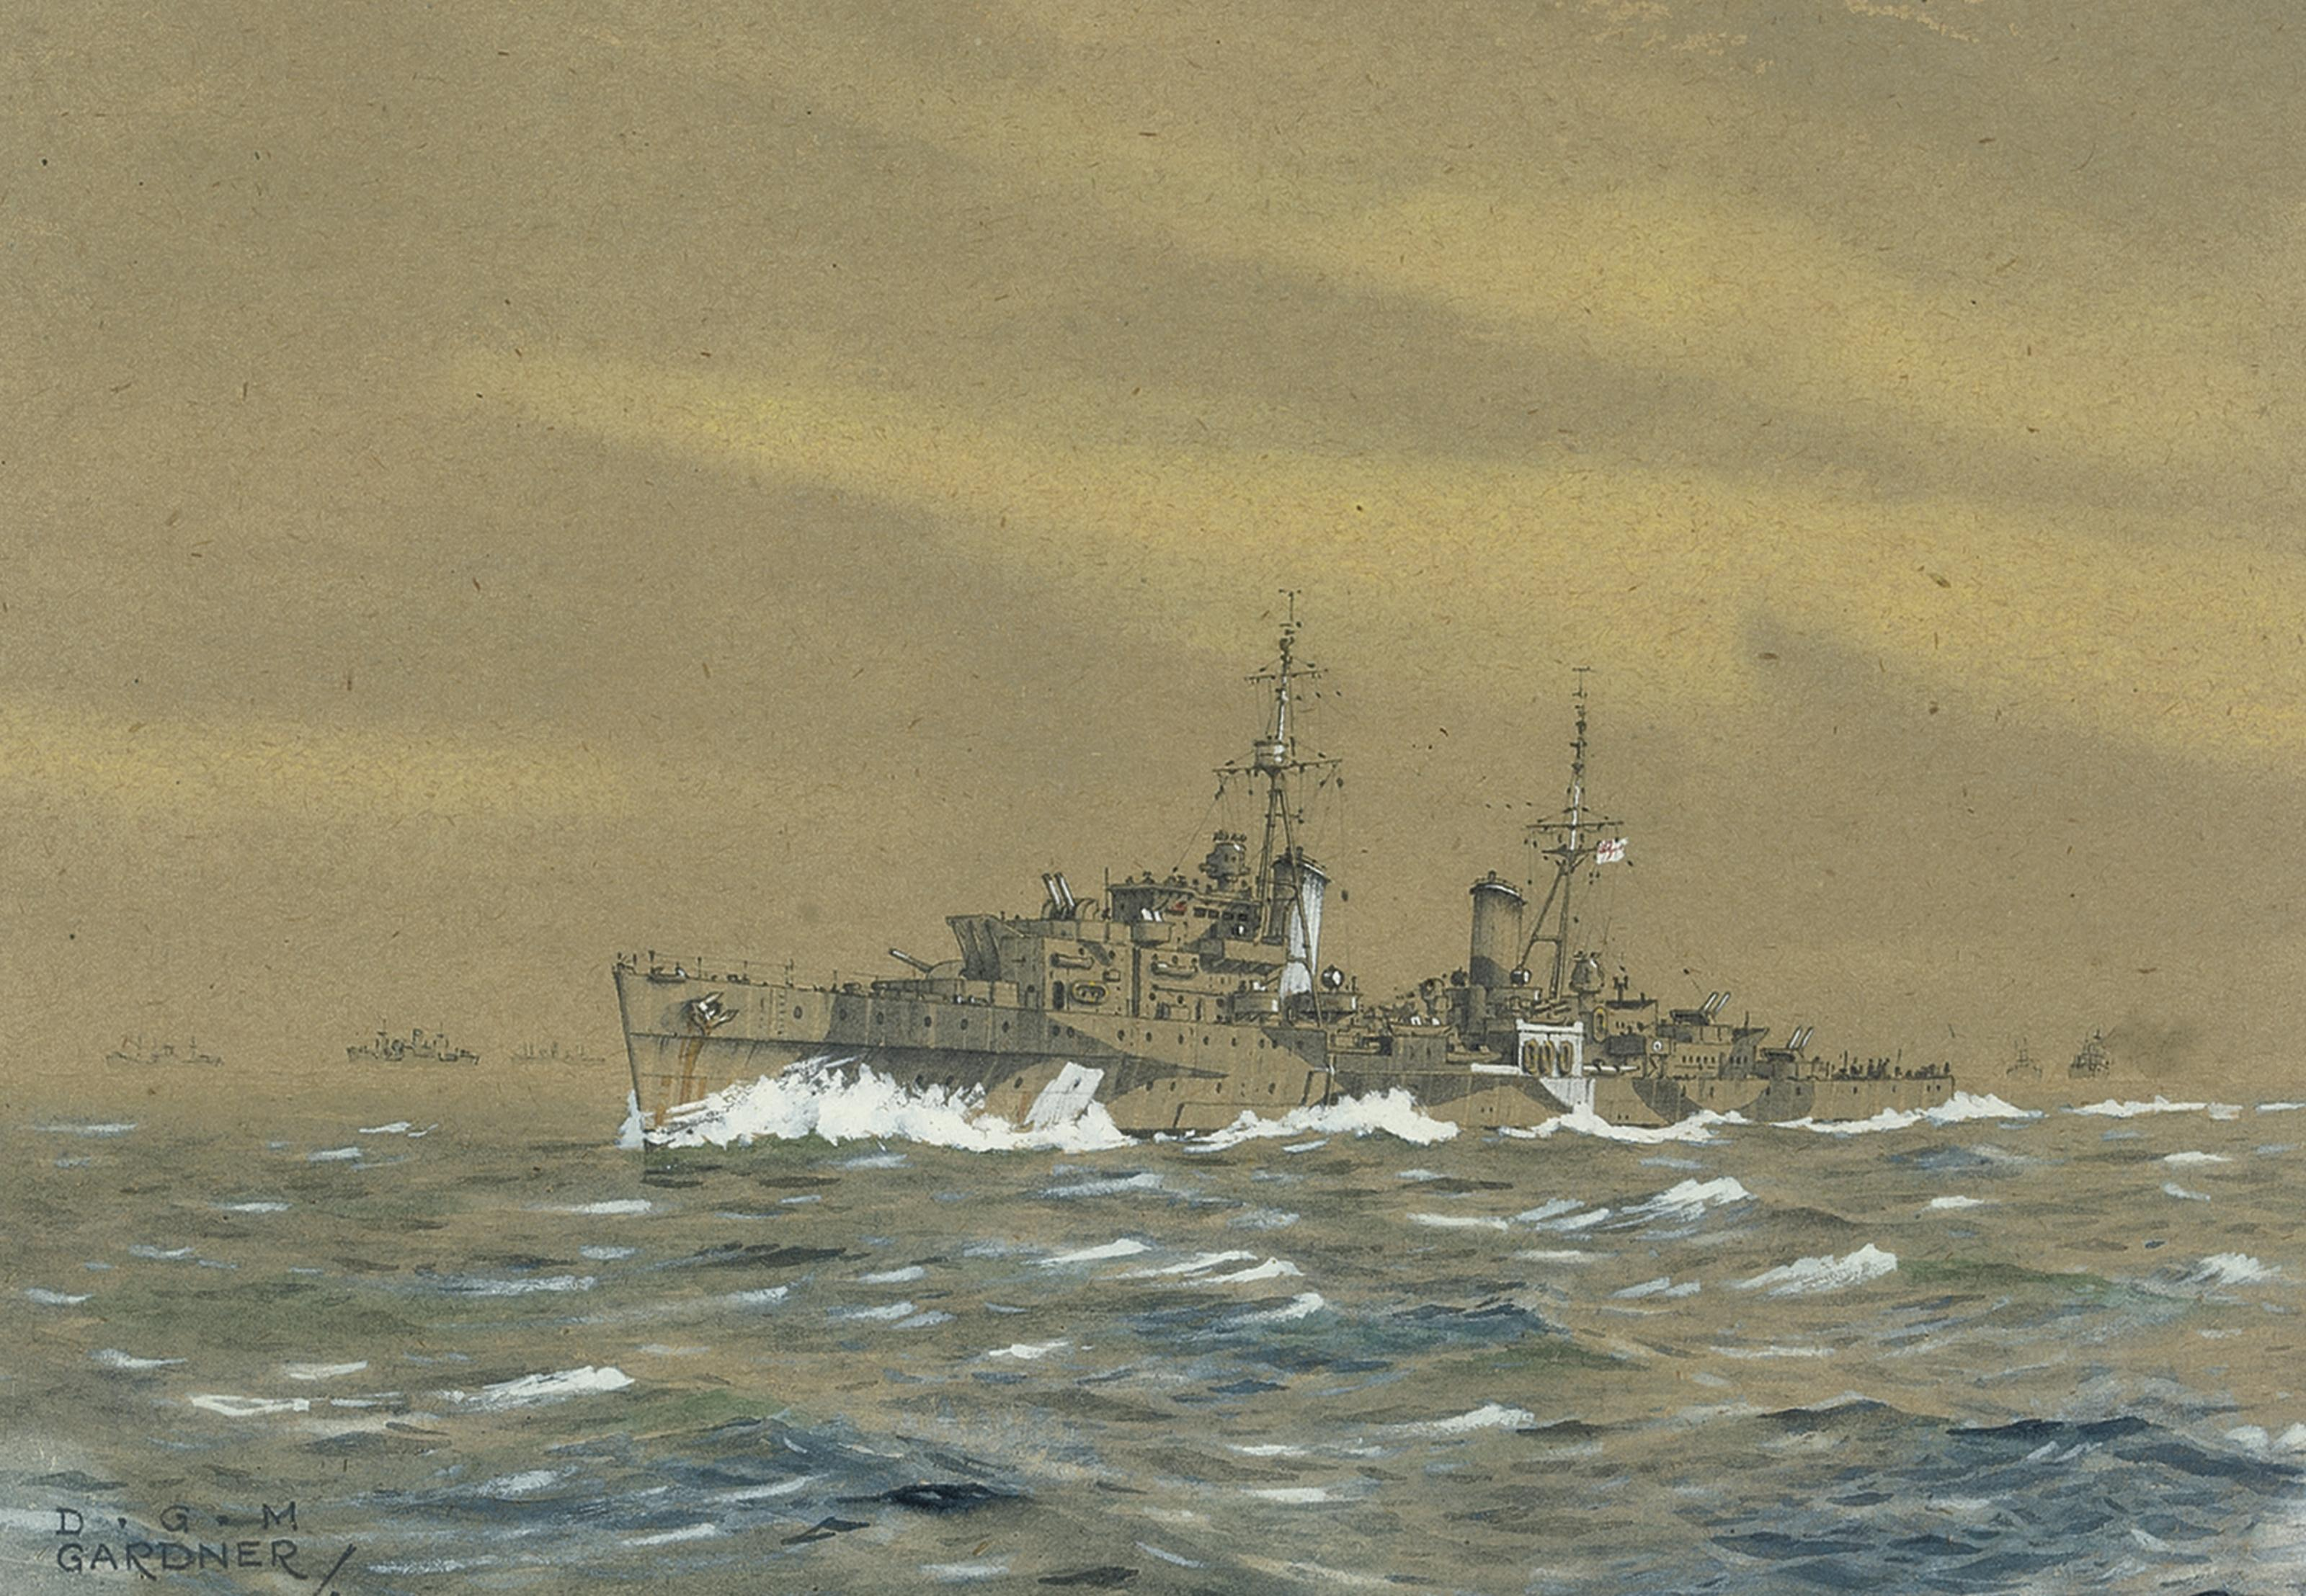 H.M.S. Elizabeth, 1942; H.M.S. Edinburgh, 1942; H.M.S. Scylla in the Arctic, 1943; H.M.S. Scylla, D-Day, 1944 (illustrated); H.M.S. Nairana in the Arctic, 1944; and H.M.S. Superb, 1945